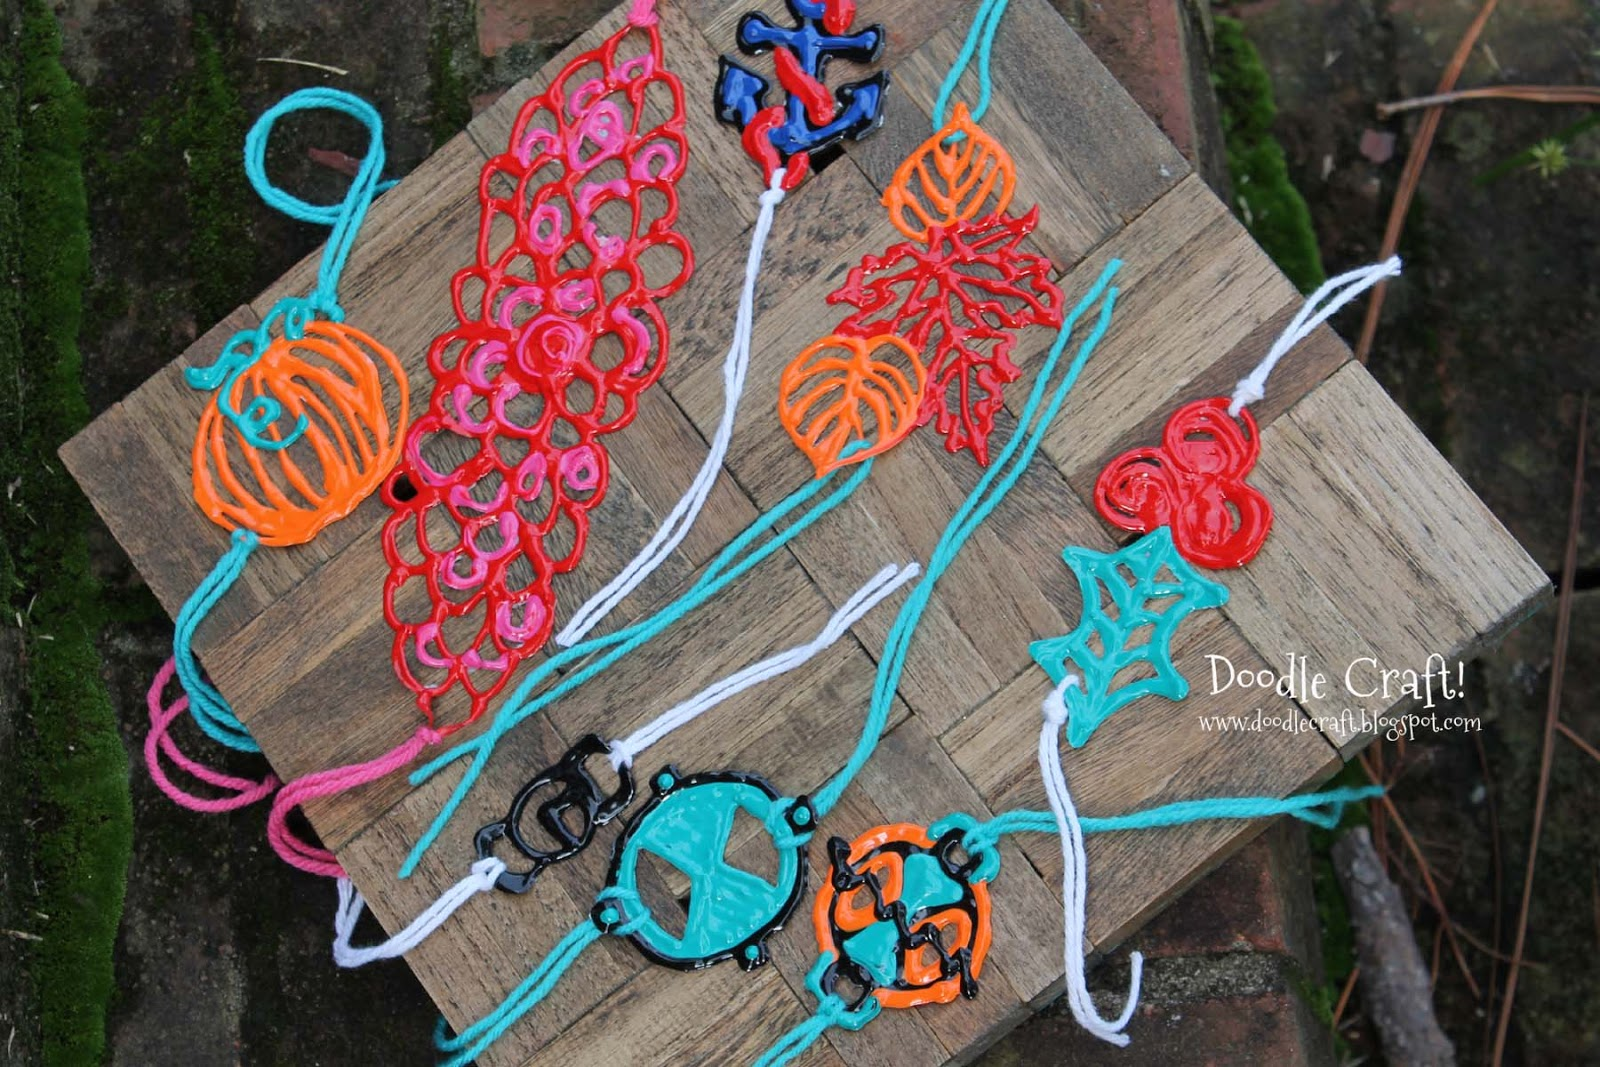 Doodlecraft: Puffy Paint Bracelets Wristbands and Headbands!